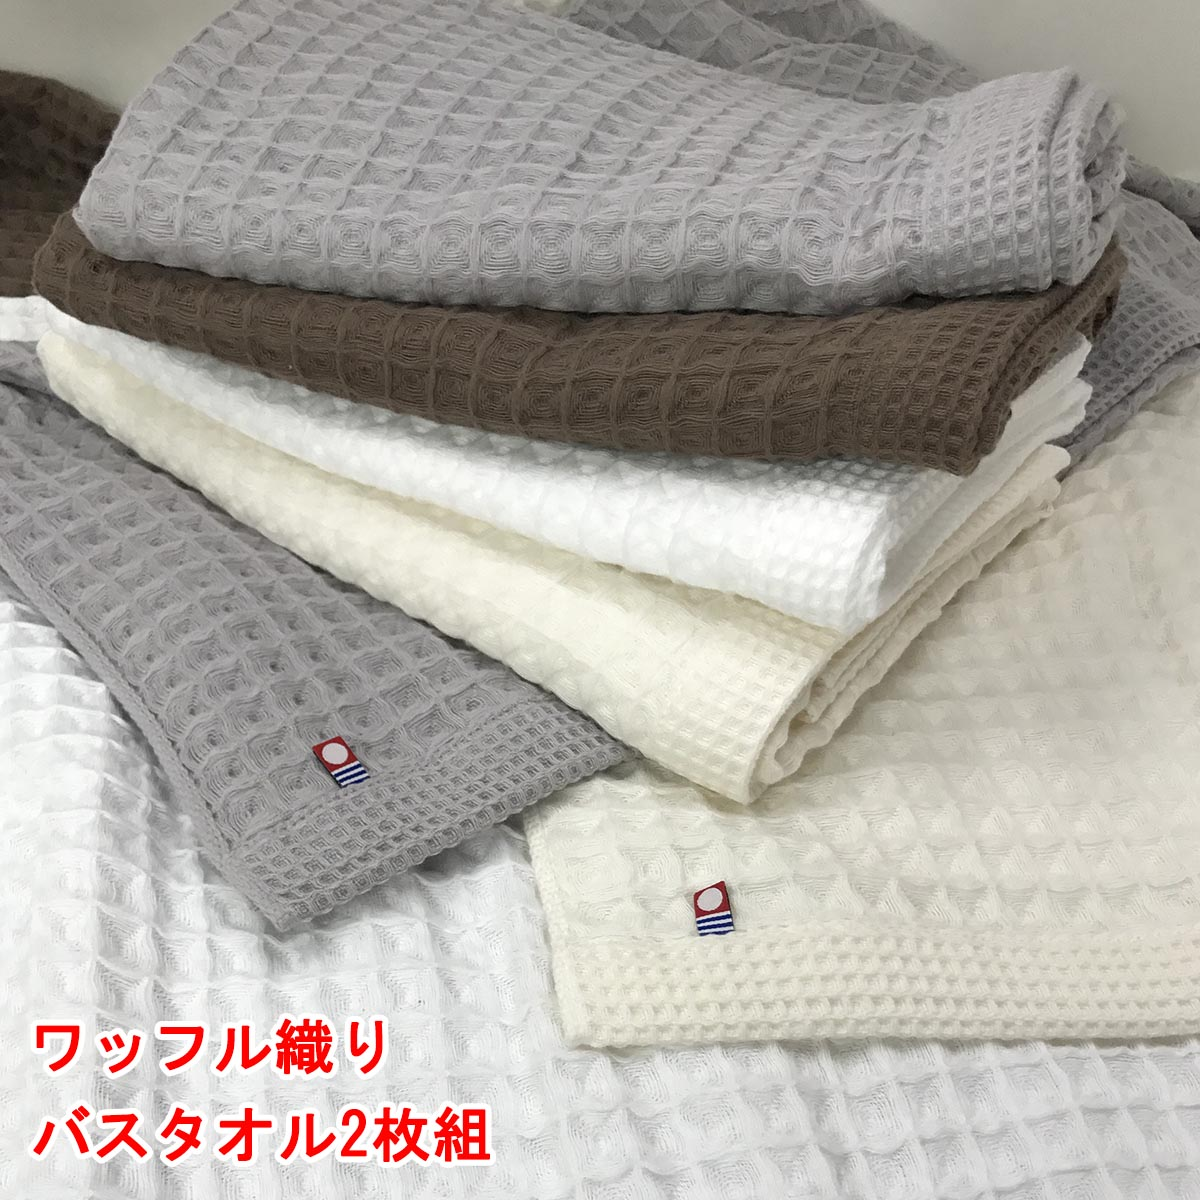 100 Of Class Two Pieces Of Imabari Towel Waffle Weave Bath Towels About 60x125cm Cotton